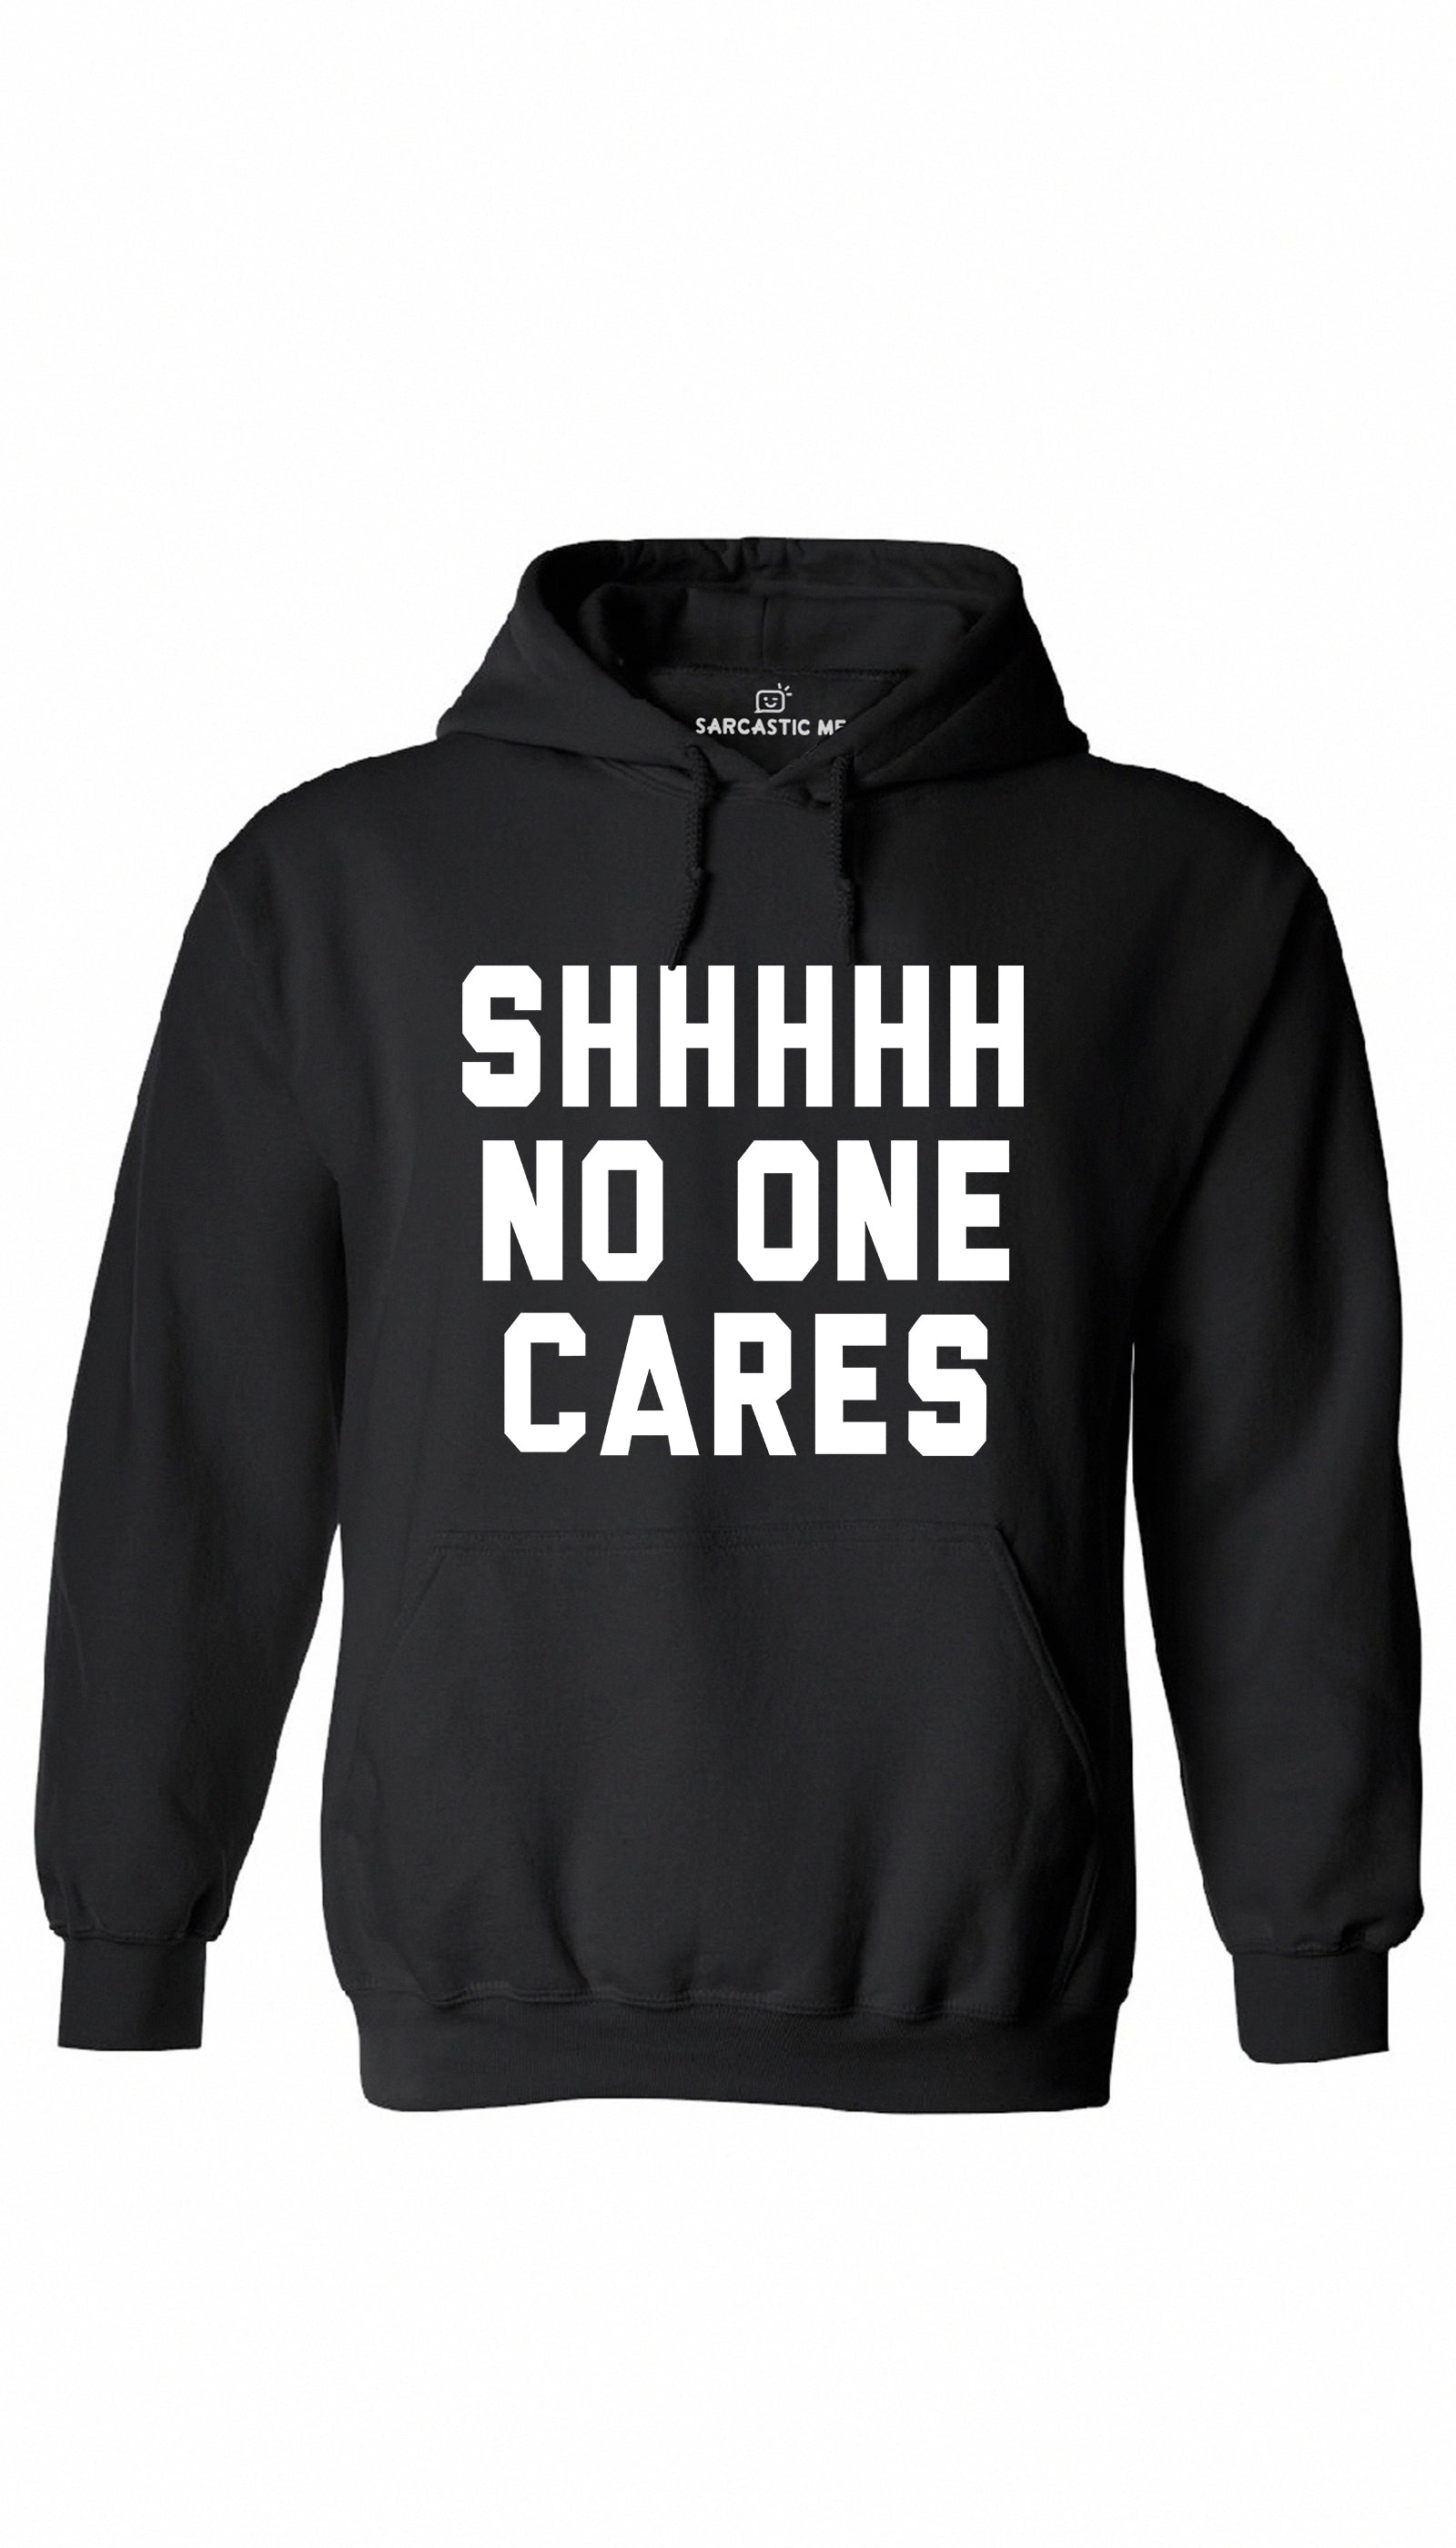 Shhhh No One Cares Black Hoodie | Sarcastic ME